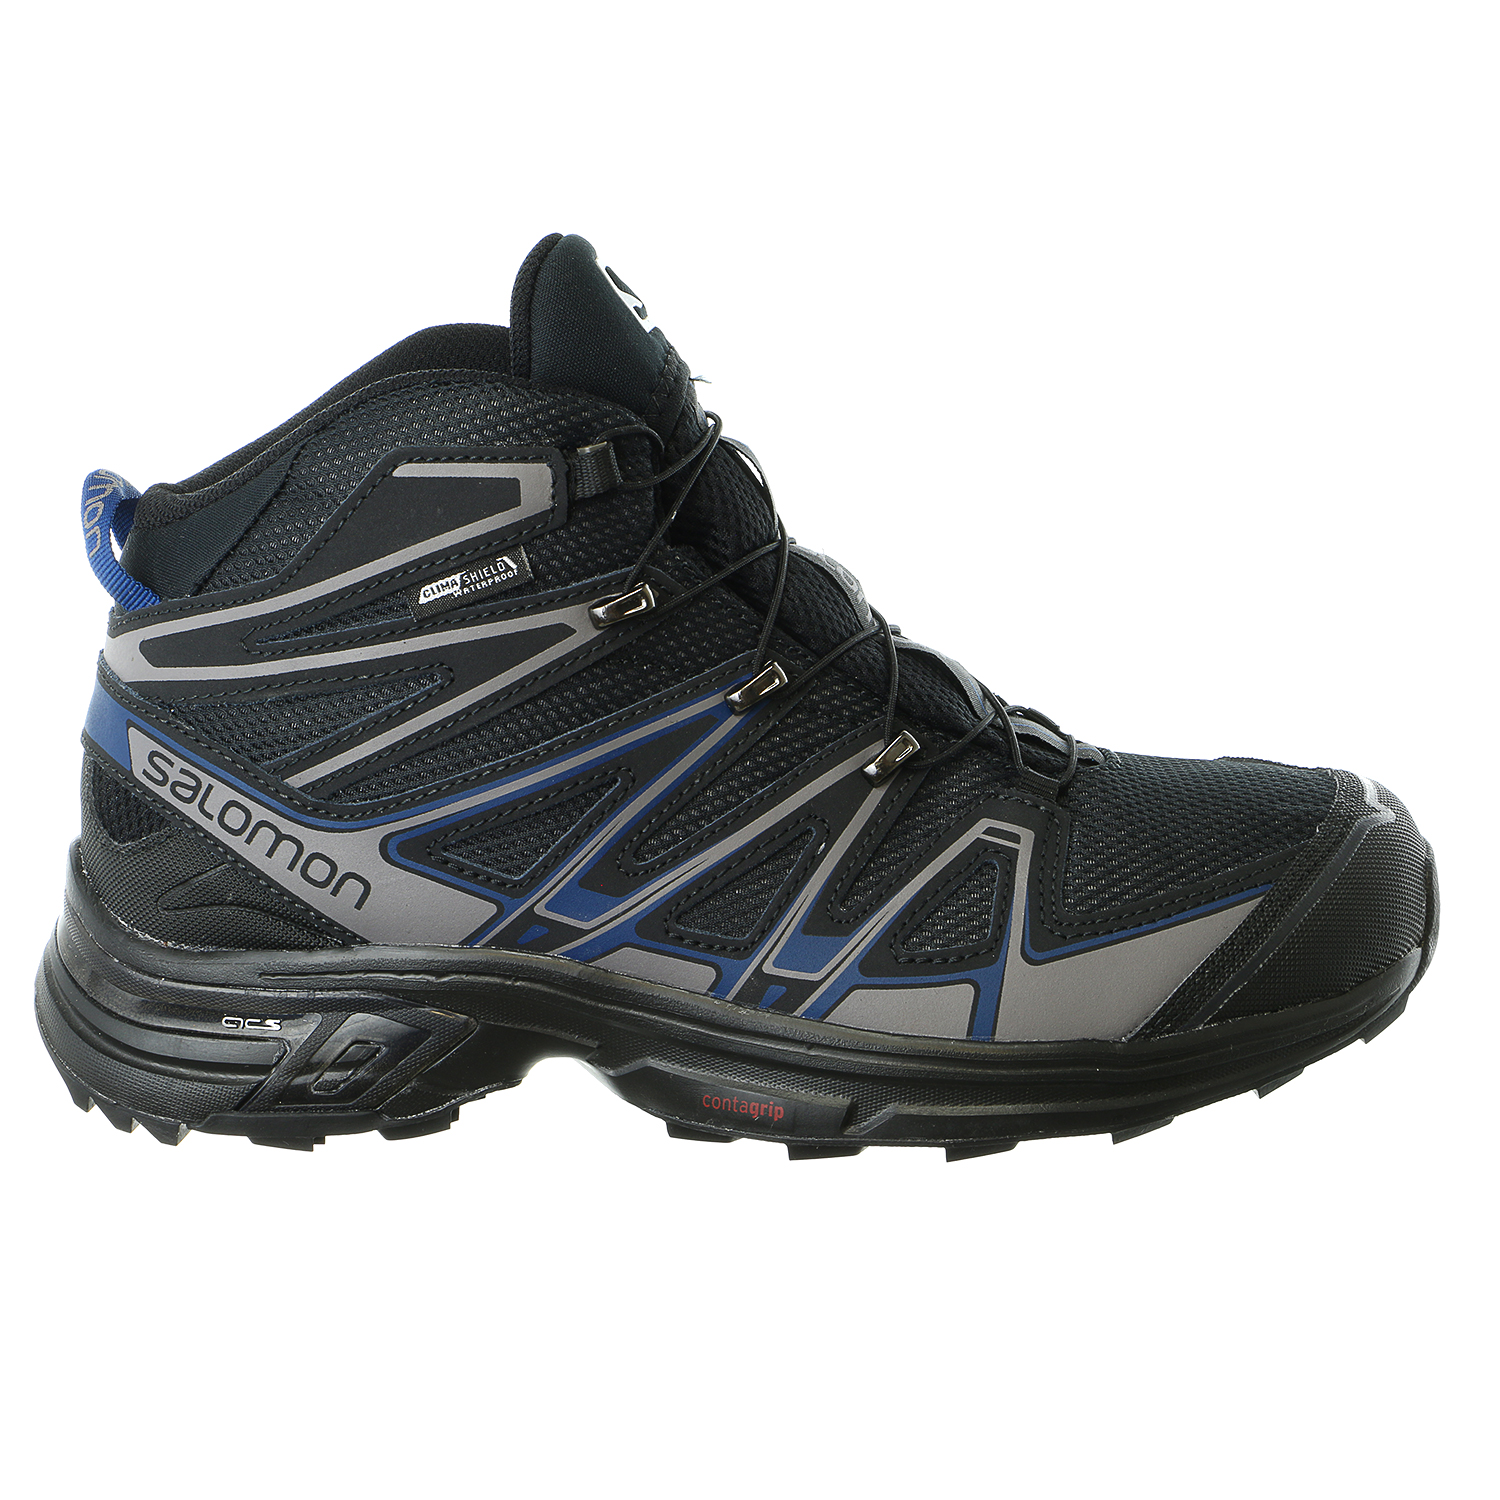 Salomon X-Chase Mid CS WP-M Hiking Boot High Top Sneaker Shoe - Mens